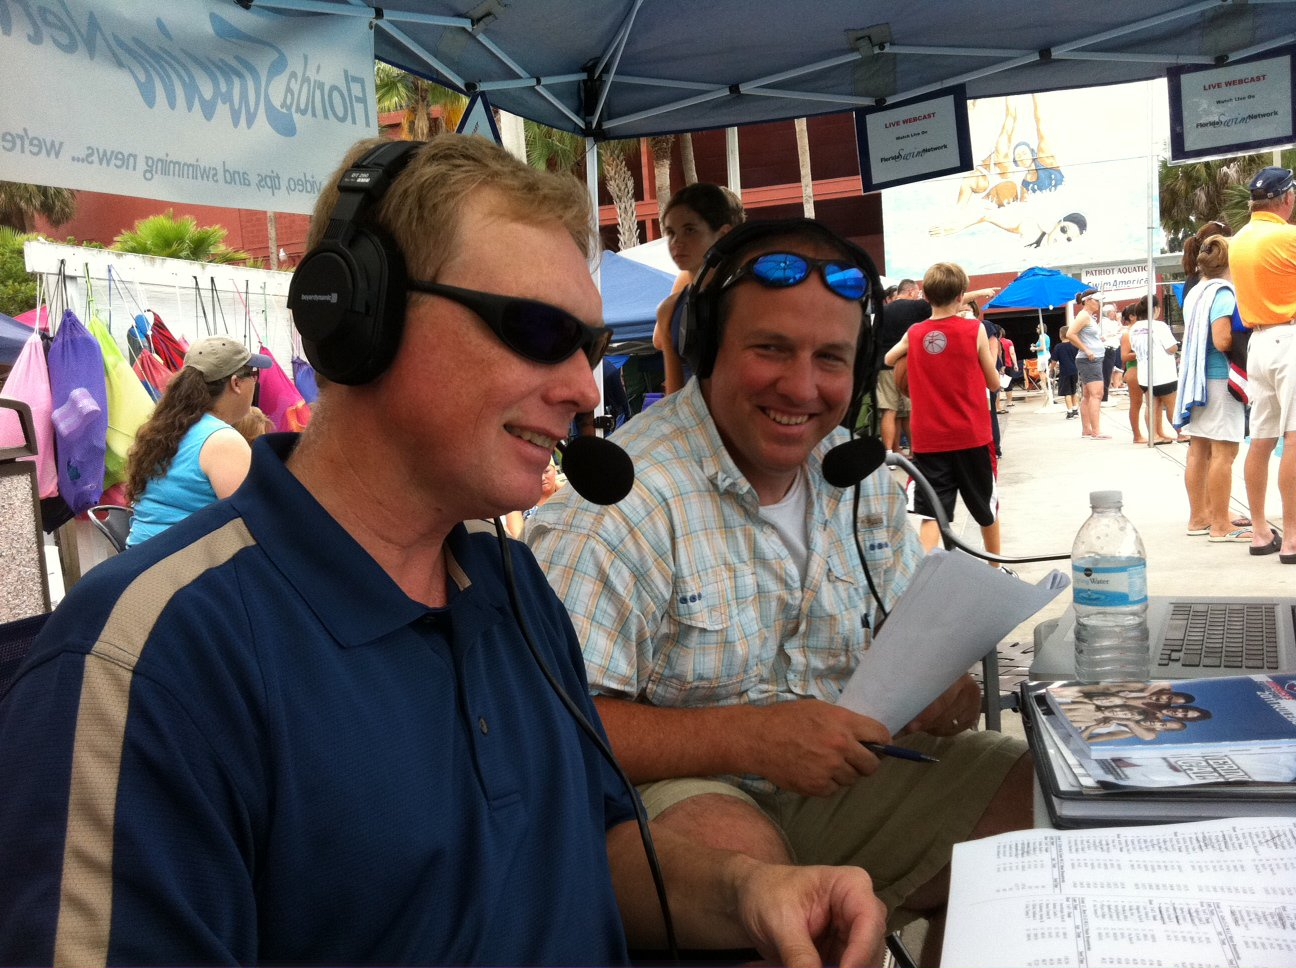 Parents Dave Van Buskirk and Michael Kennedy volunteered their time to commentate a swim meet and man the chat room.